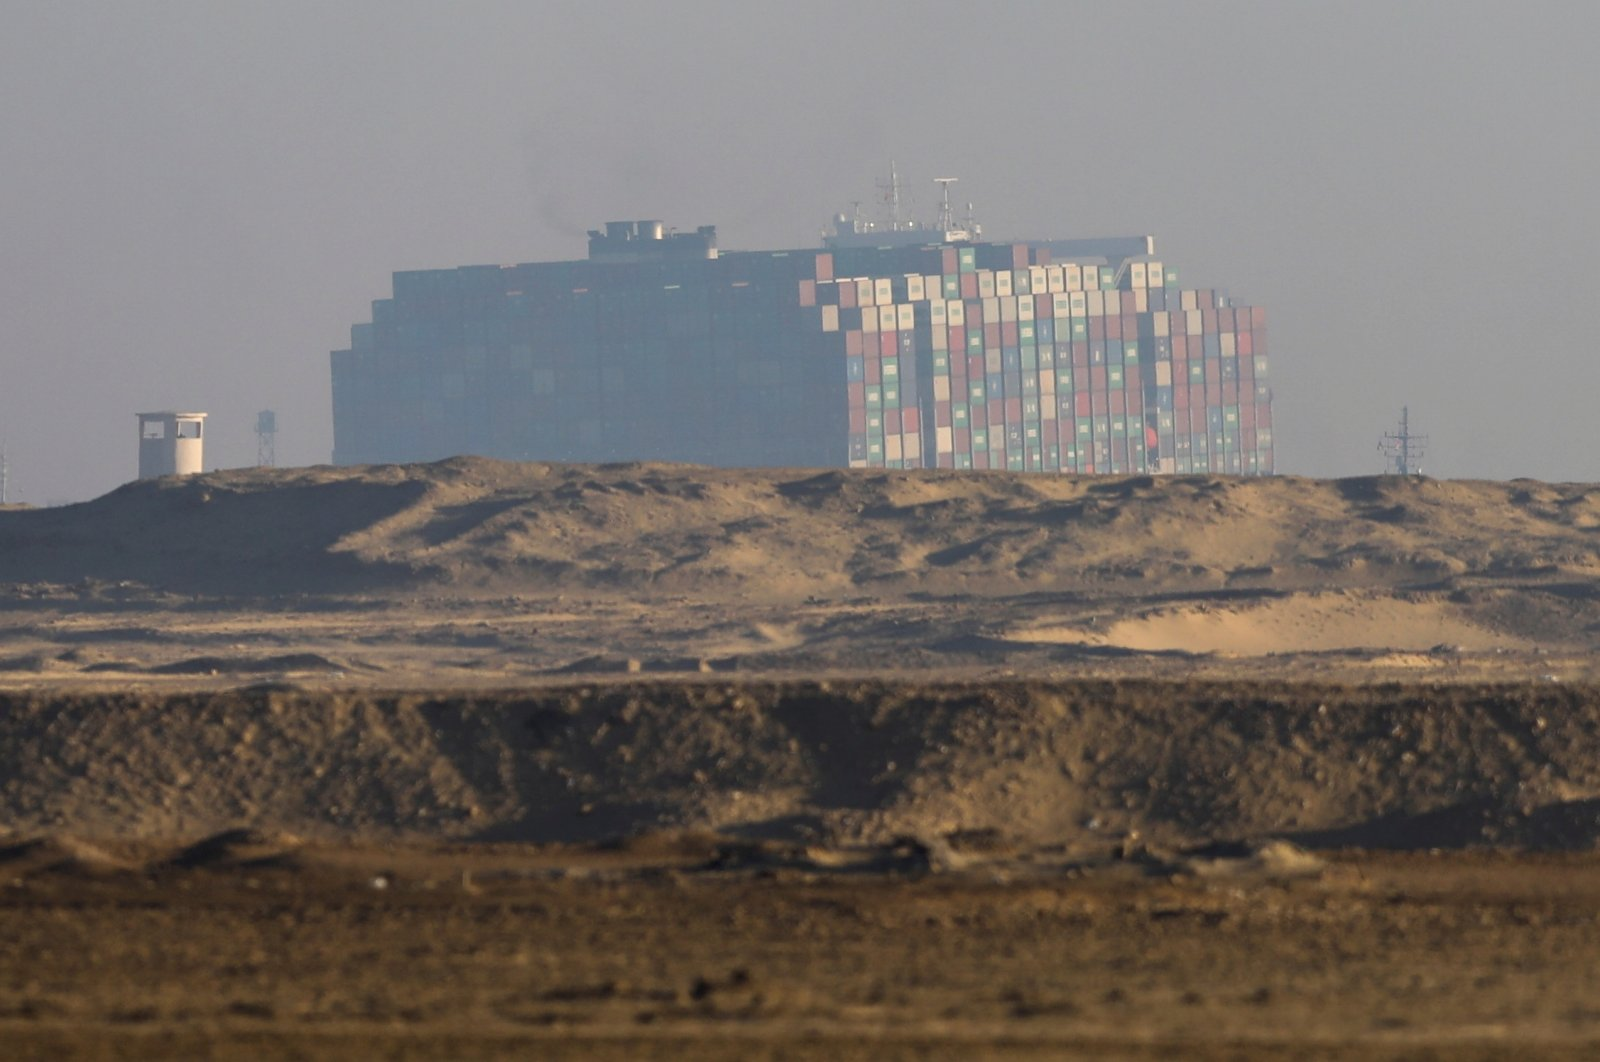 A view shows the refloated container ship Ever Given, one of the world's largest container ships, in Suez Canal, Egypt March 29, 2021. (Reuters Photo)